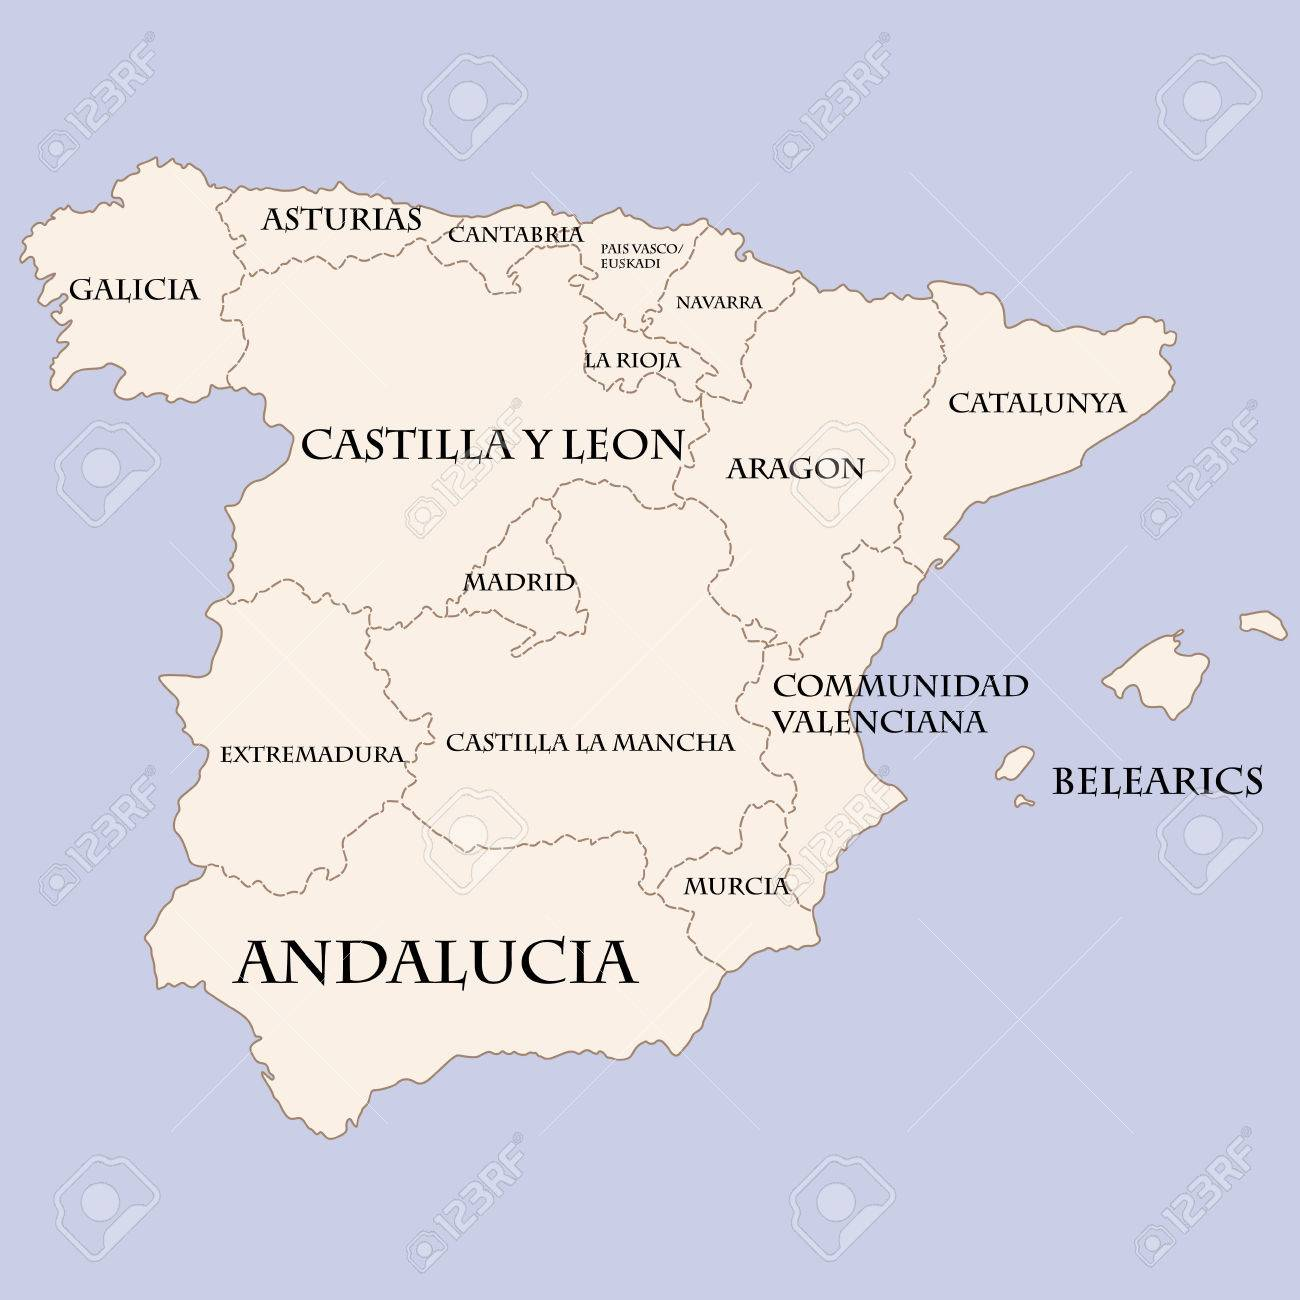 Spain map with regions names